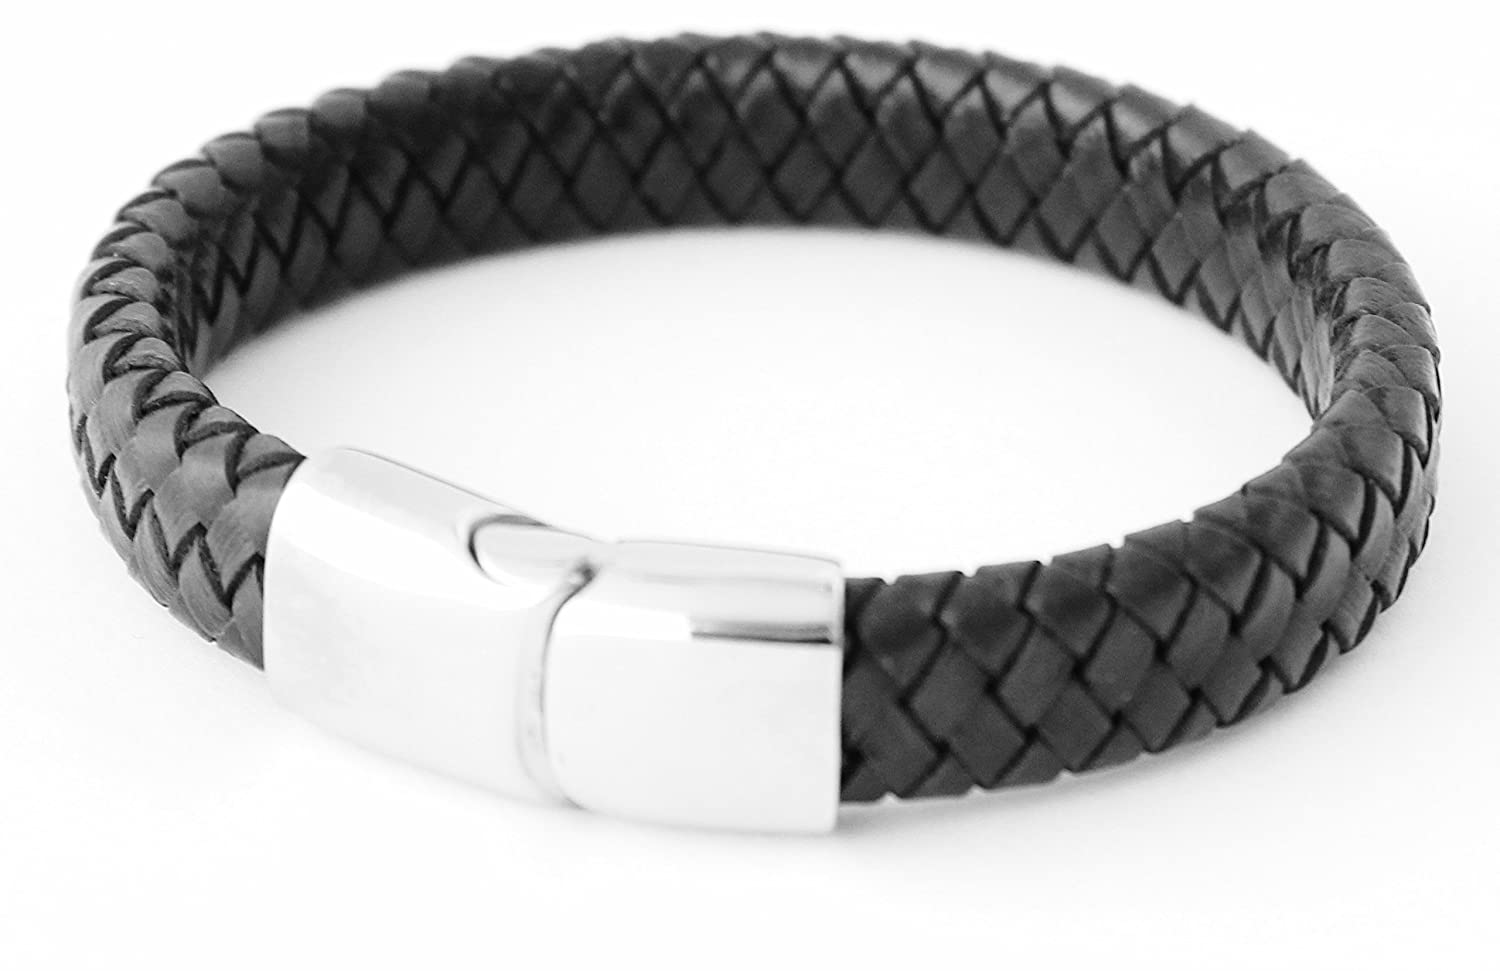 Boys Black Plaited Leather Personalised Bracelet - Any engraving FREE Bluerock BayTM boysblkplt